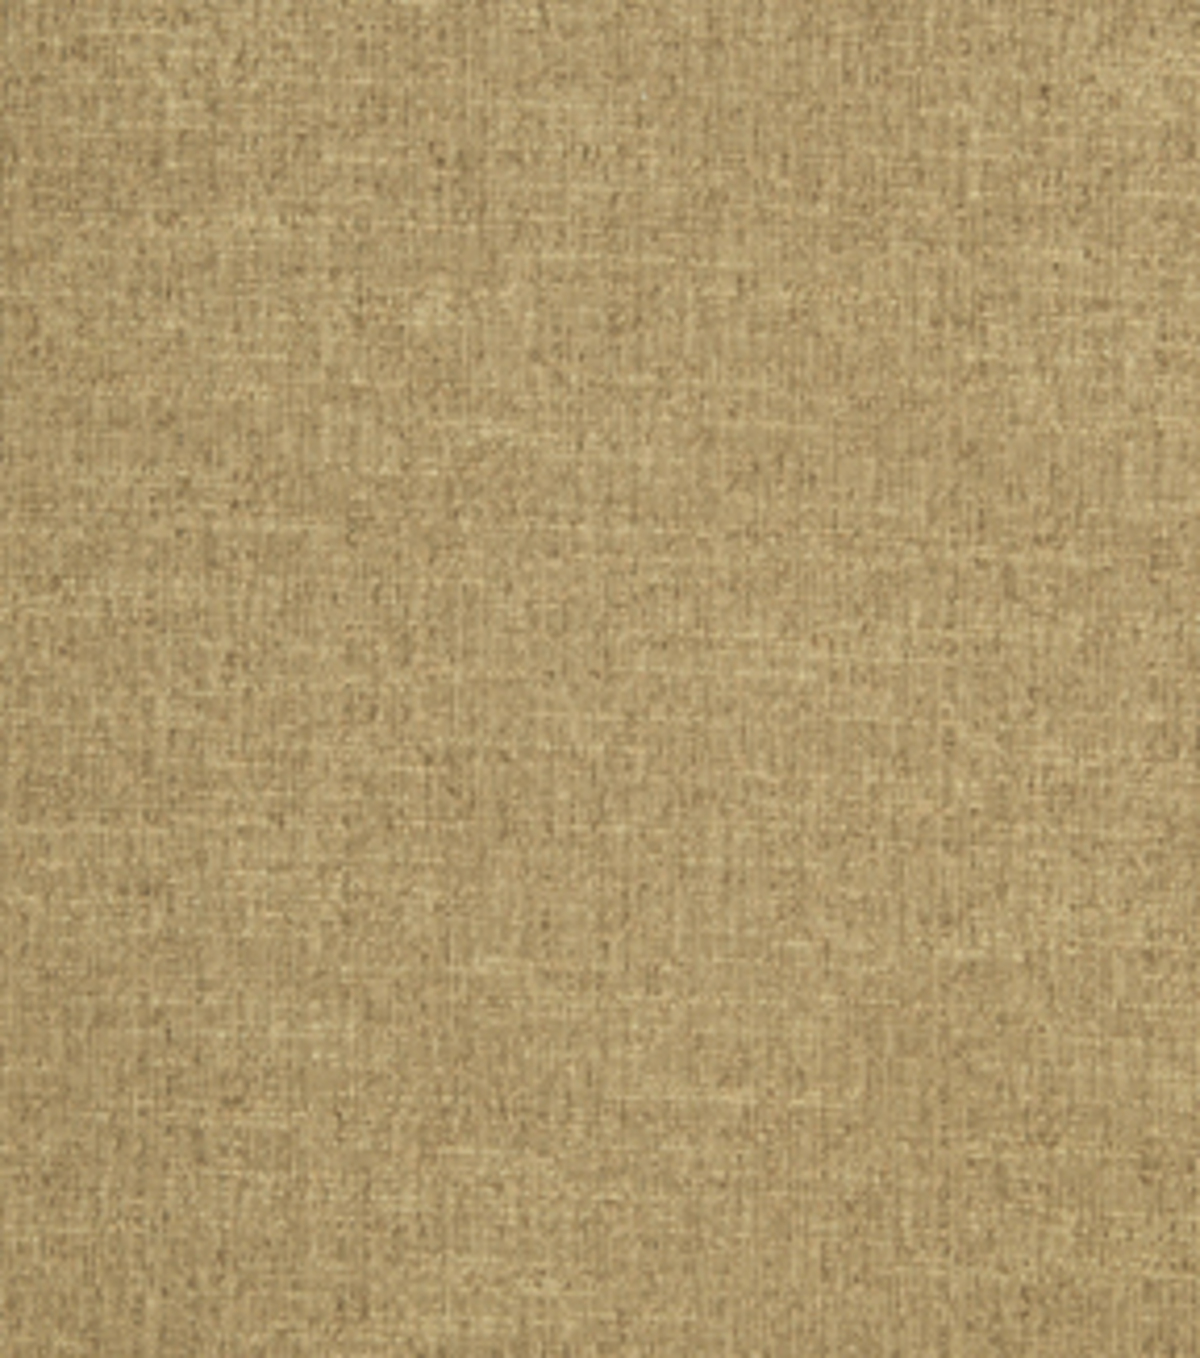 Home Decor 8\u0022x8\u0022 Fabric Swatch-Signature Series Texture Coffee